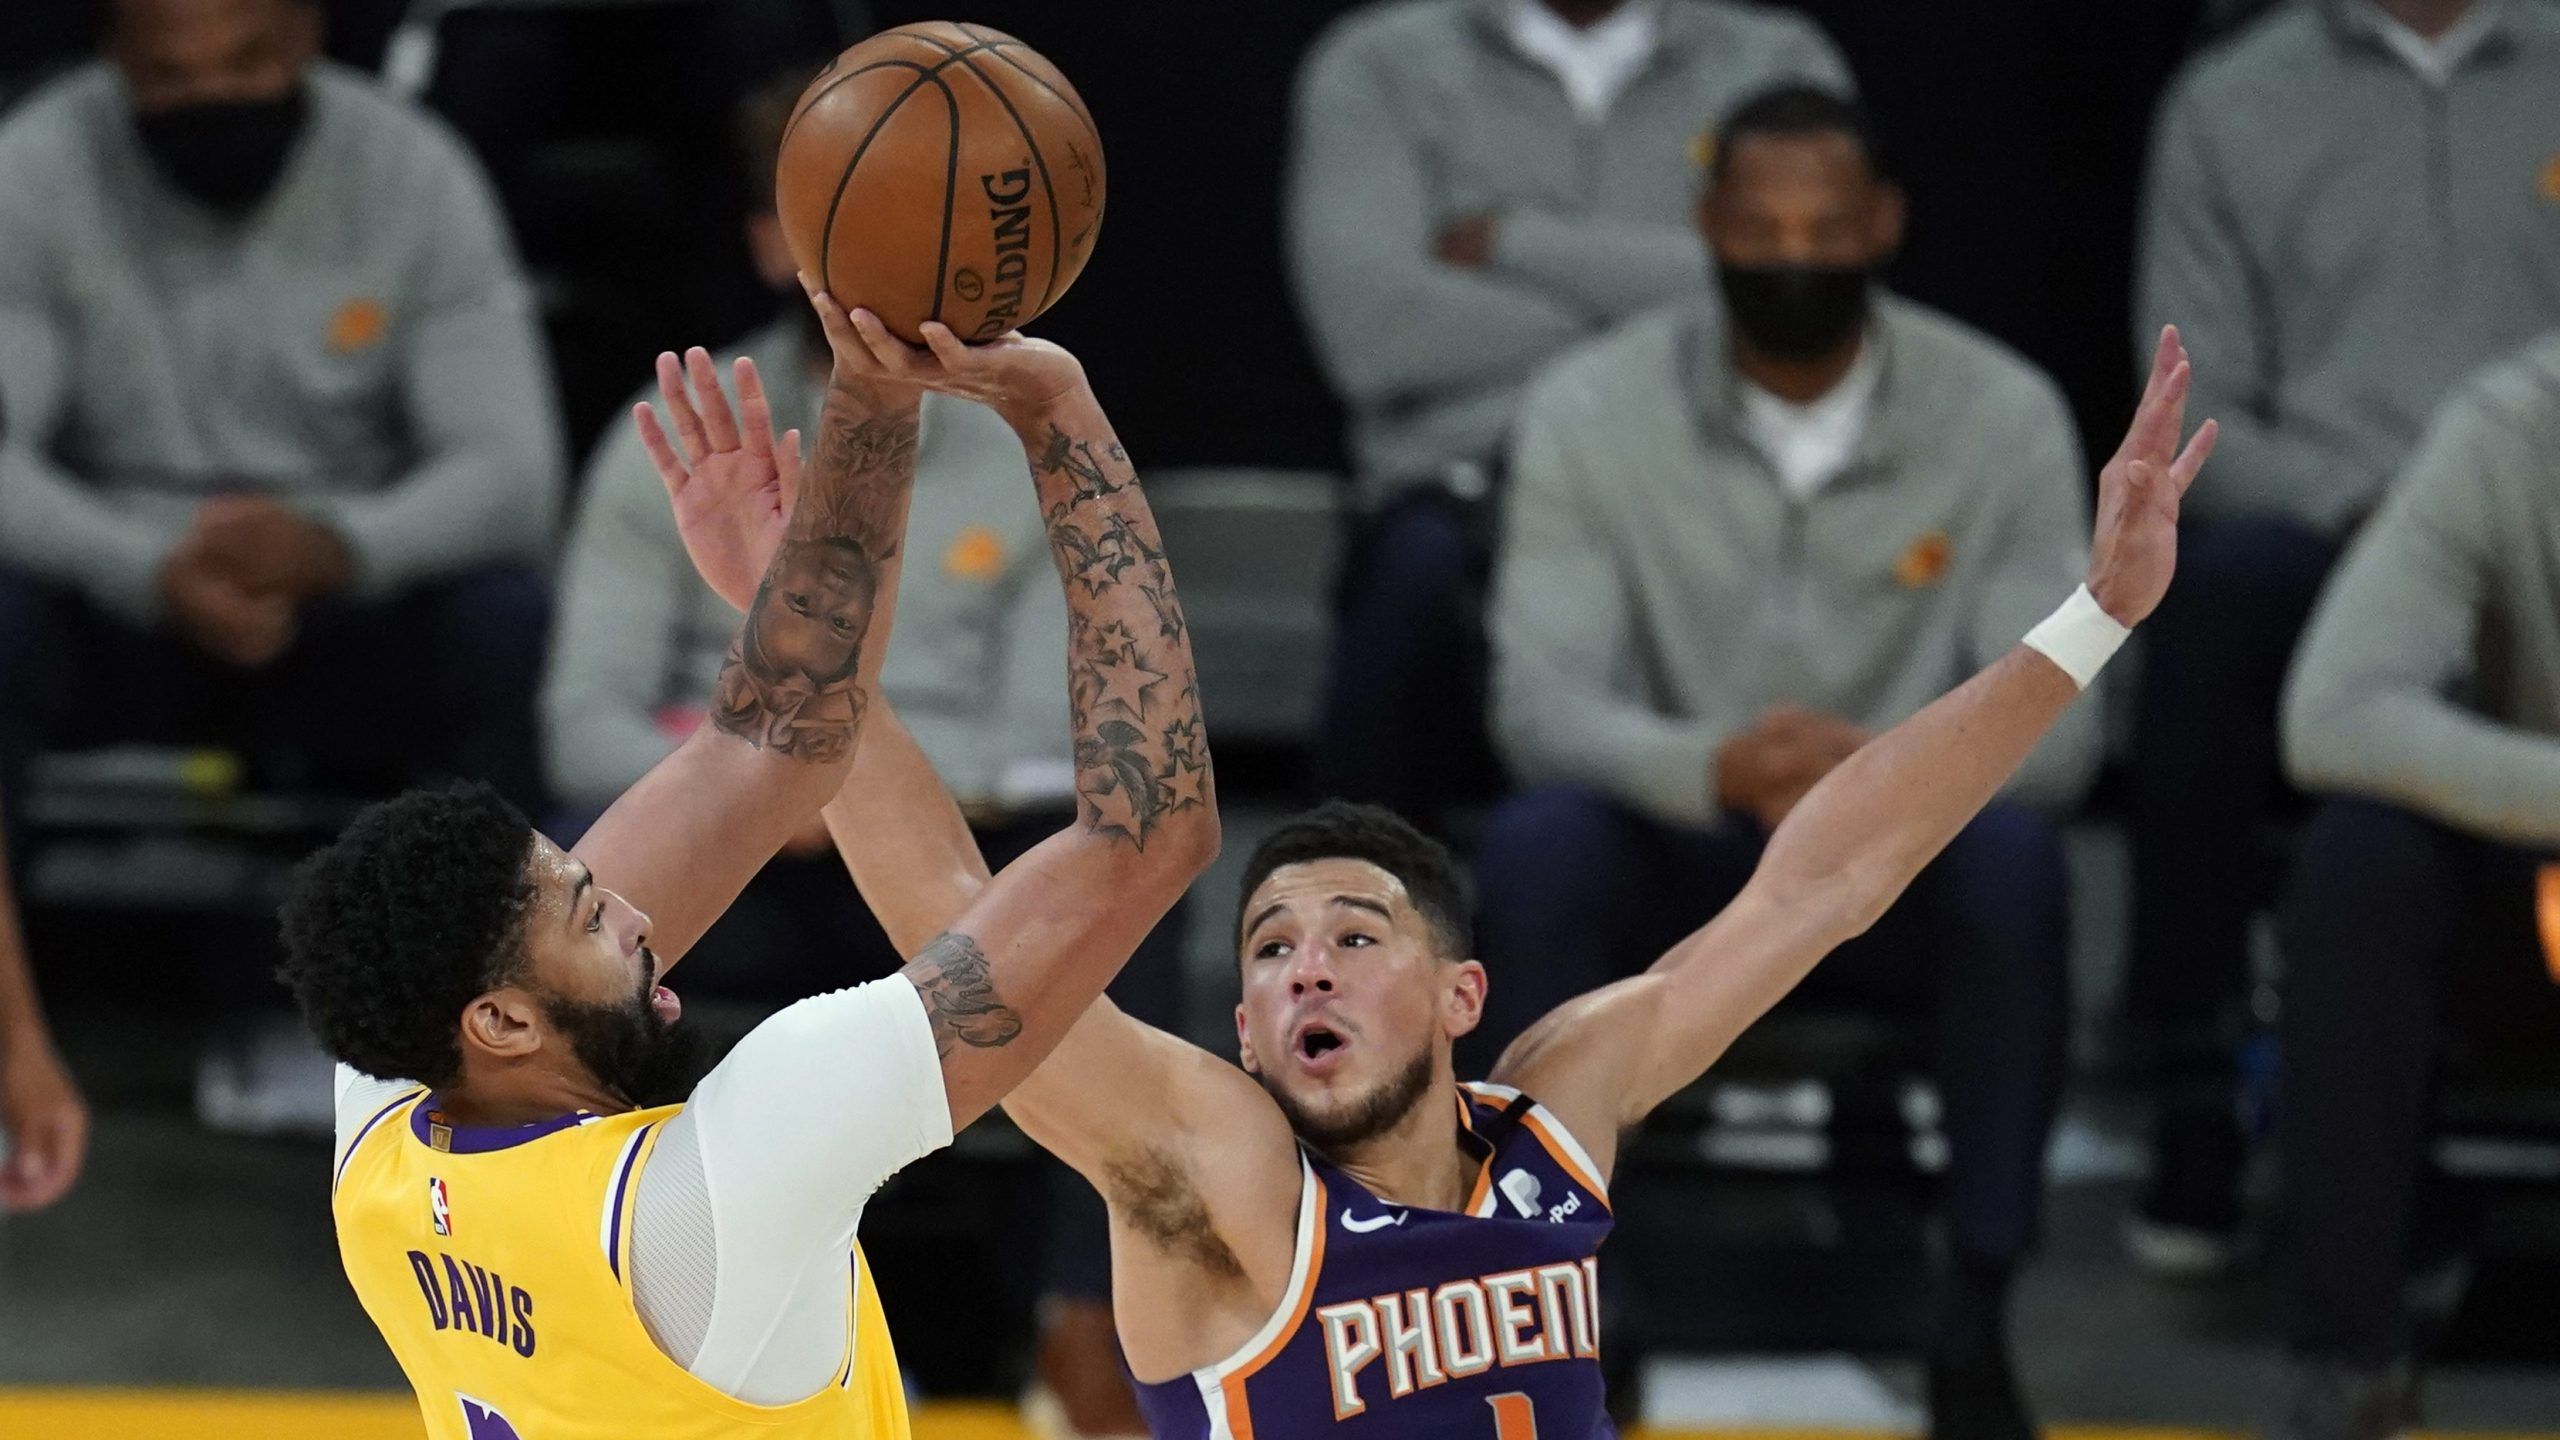 Los Angeles Lakers forward Anthony Davis shoots over Phoenix Suns guard Devin Booker during the first half in Game 3 of an NBA basketball first-round playoff series against the Phoenix Suns at Staples Center on May 27, 2021. (Marcio Jose Sanchez / Associated Press)